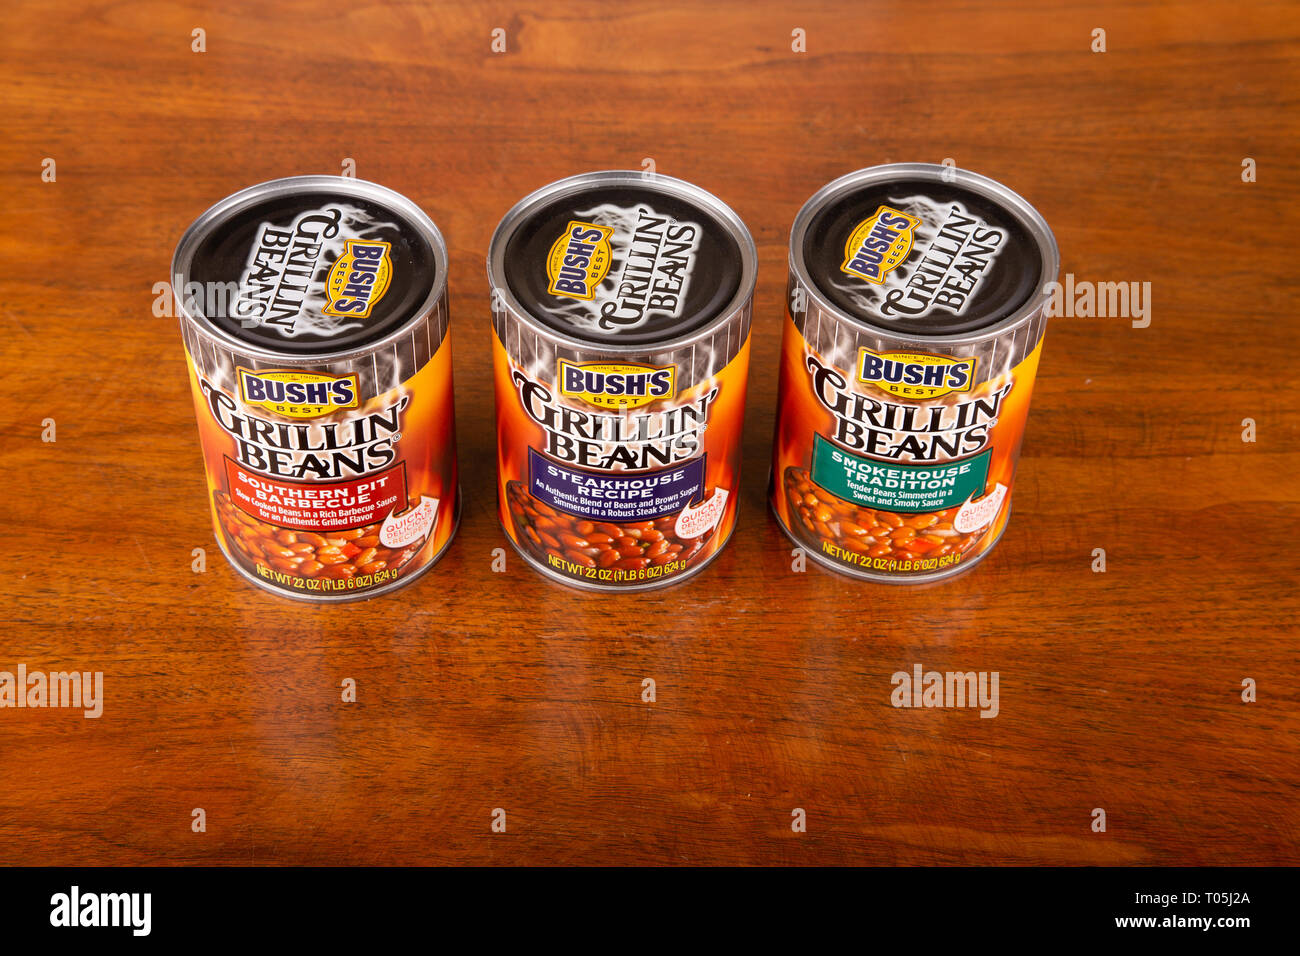 ATLANTA, GEORGIA - April 21, 2017: Bush's Grillin Beans. Three varieties of beans in cans on wood table. - Stock Image